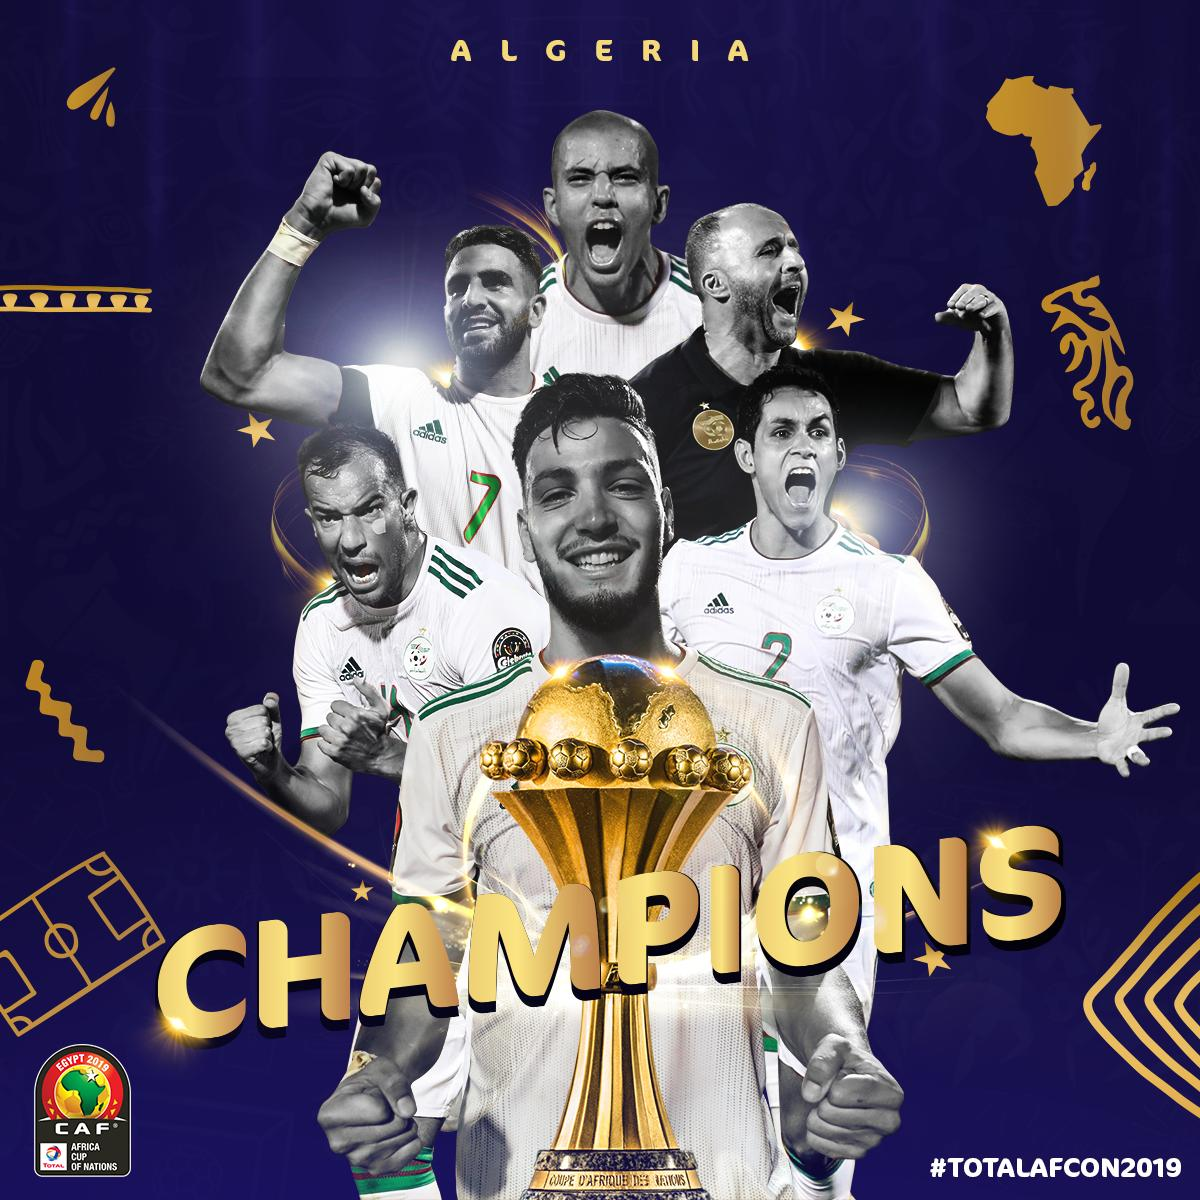 We present you the #TotalAFCON2019 champions: @LesVerts 🏆